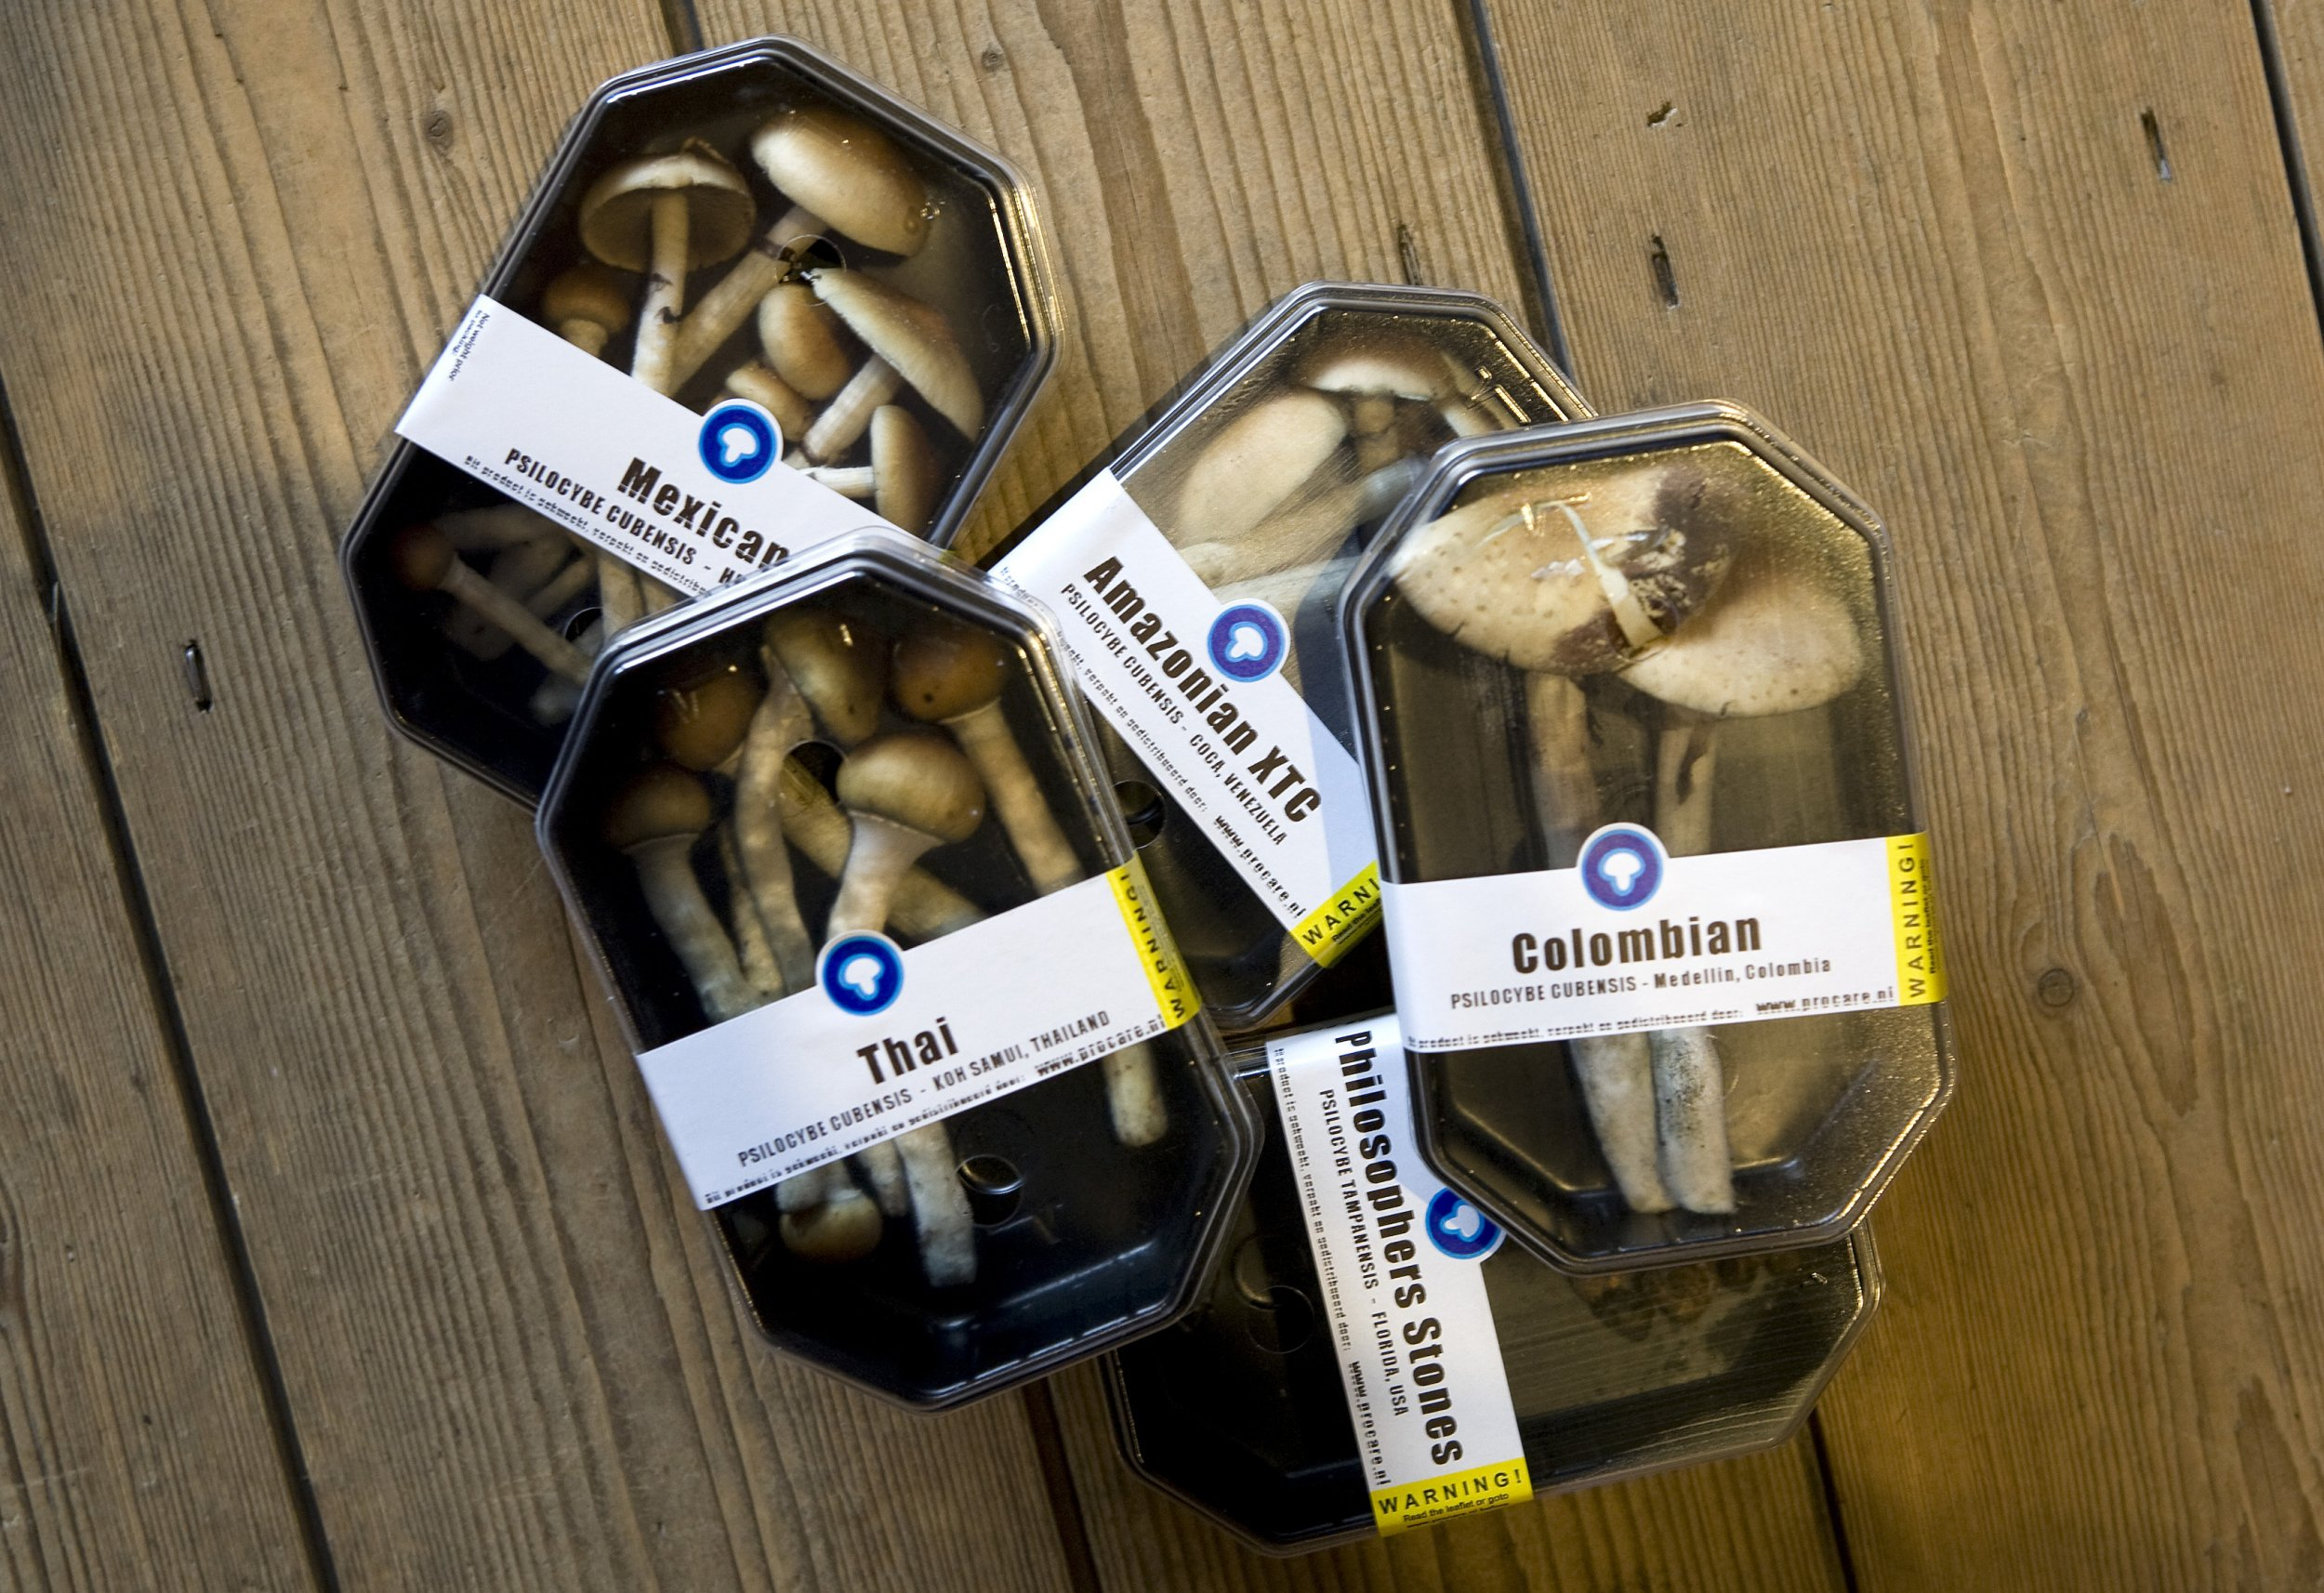 New Magic Mushrooms Discovery Could Reveal How to Make Your Own Drugs